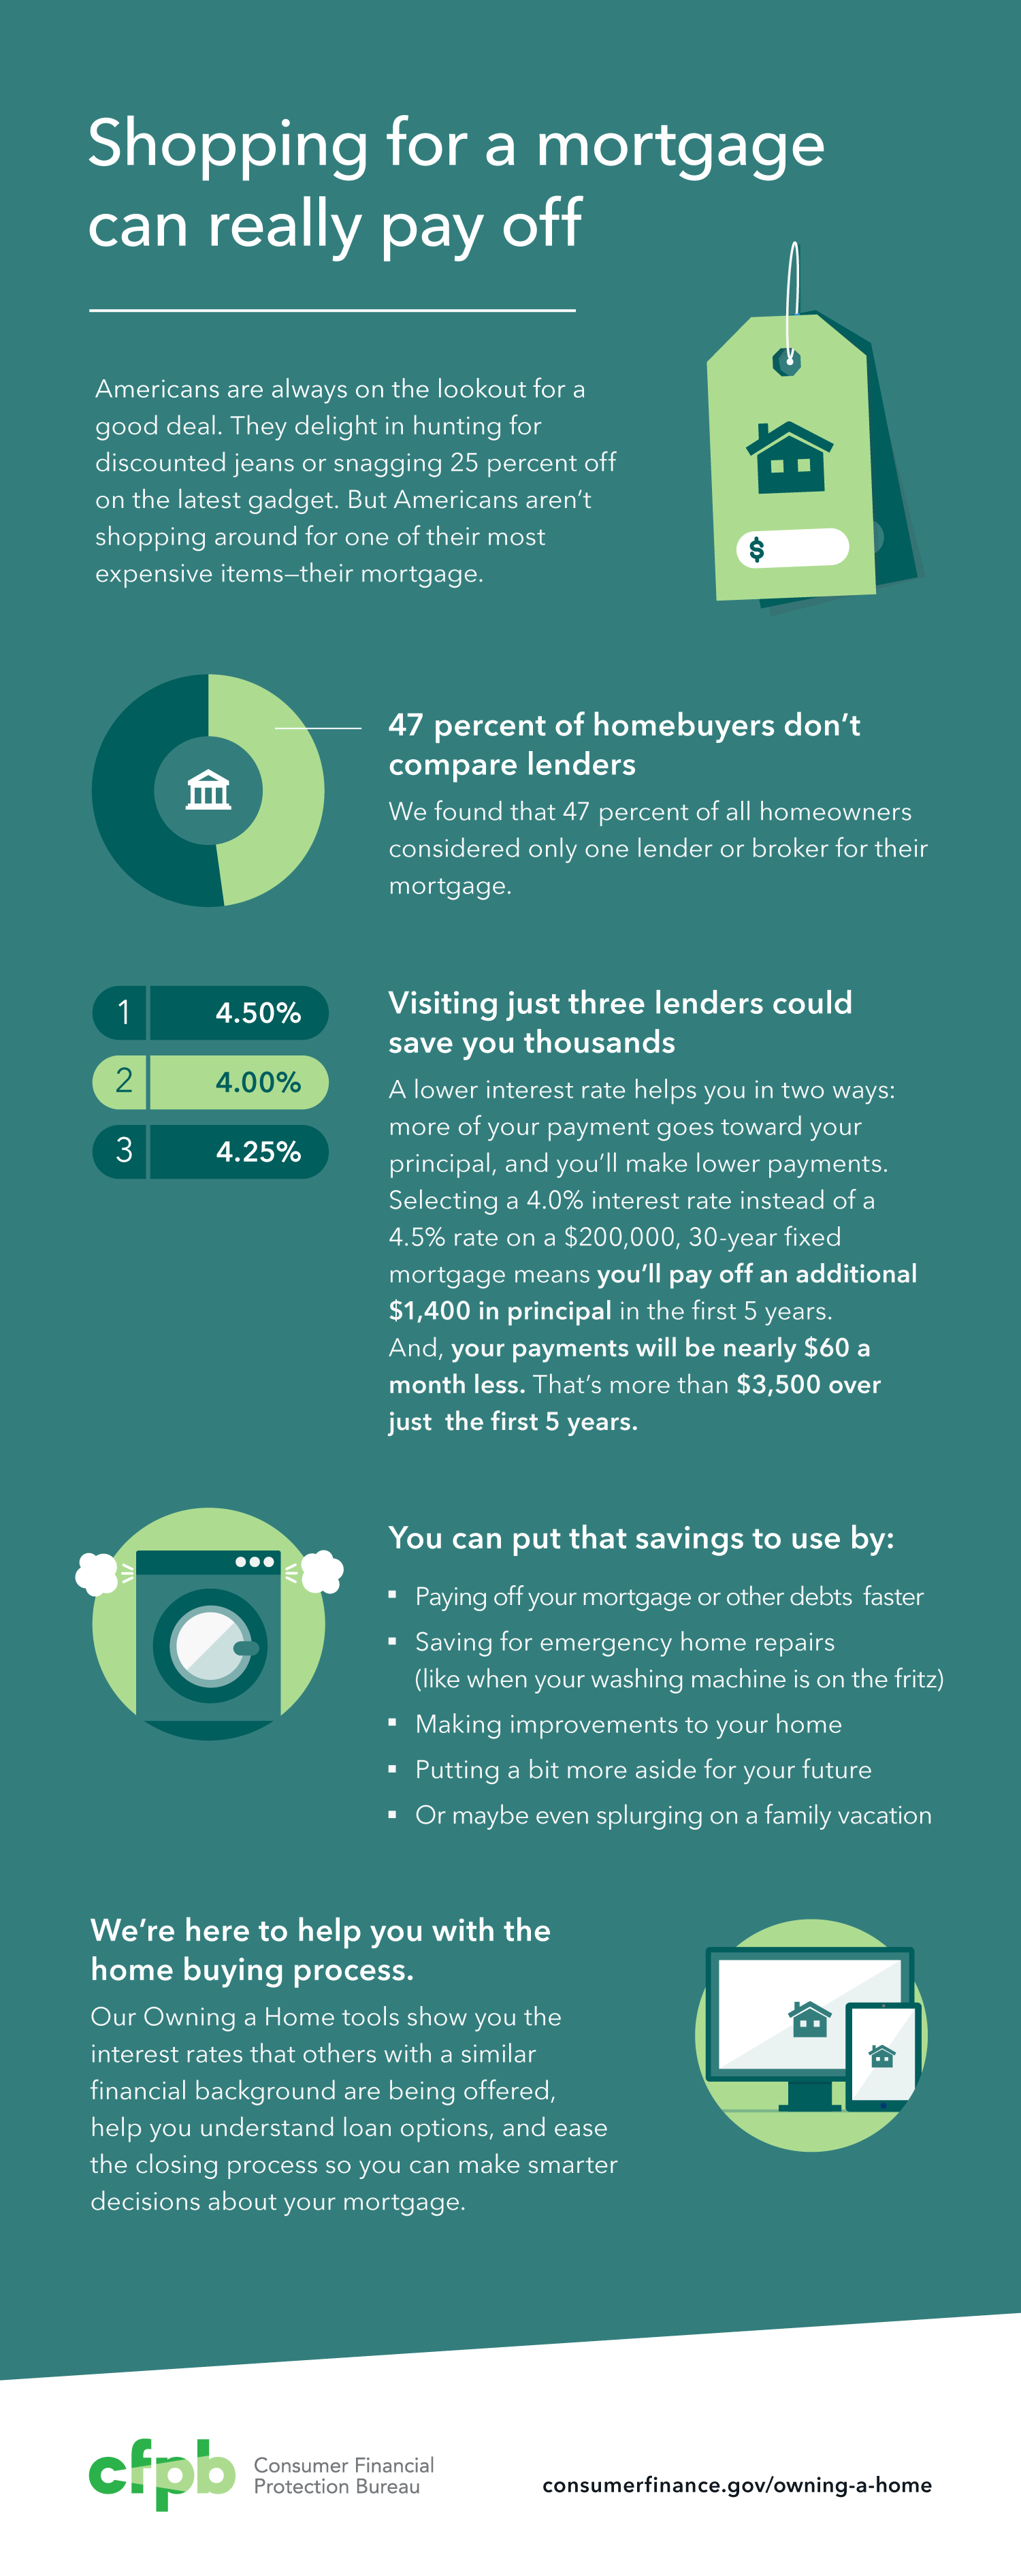 Infographic: shopping for a mortgage can really pay off. 47 percent of homebuyers don't compare lenders. Visiting just three lenders could save you thousands. You can put that savings to use. We're here to help you with the home buying process. Our Buying a House tools show you the interest rates that others with a similar financial background are being offered, help you understand loan options, and ease the closing process so you can make smarter decisions about your mortgage. Visit https://consumerfinance.gov/owning-a-home